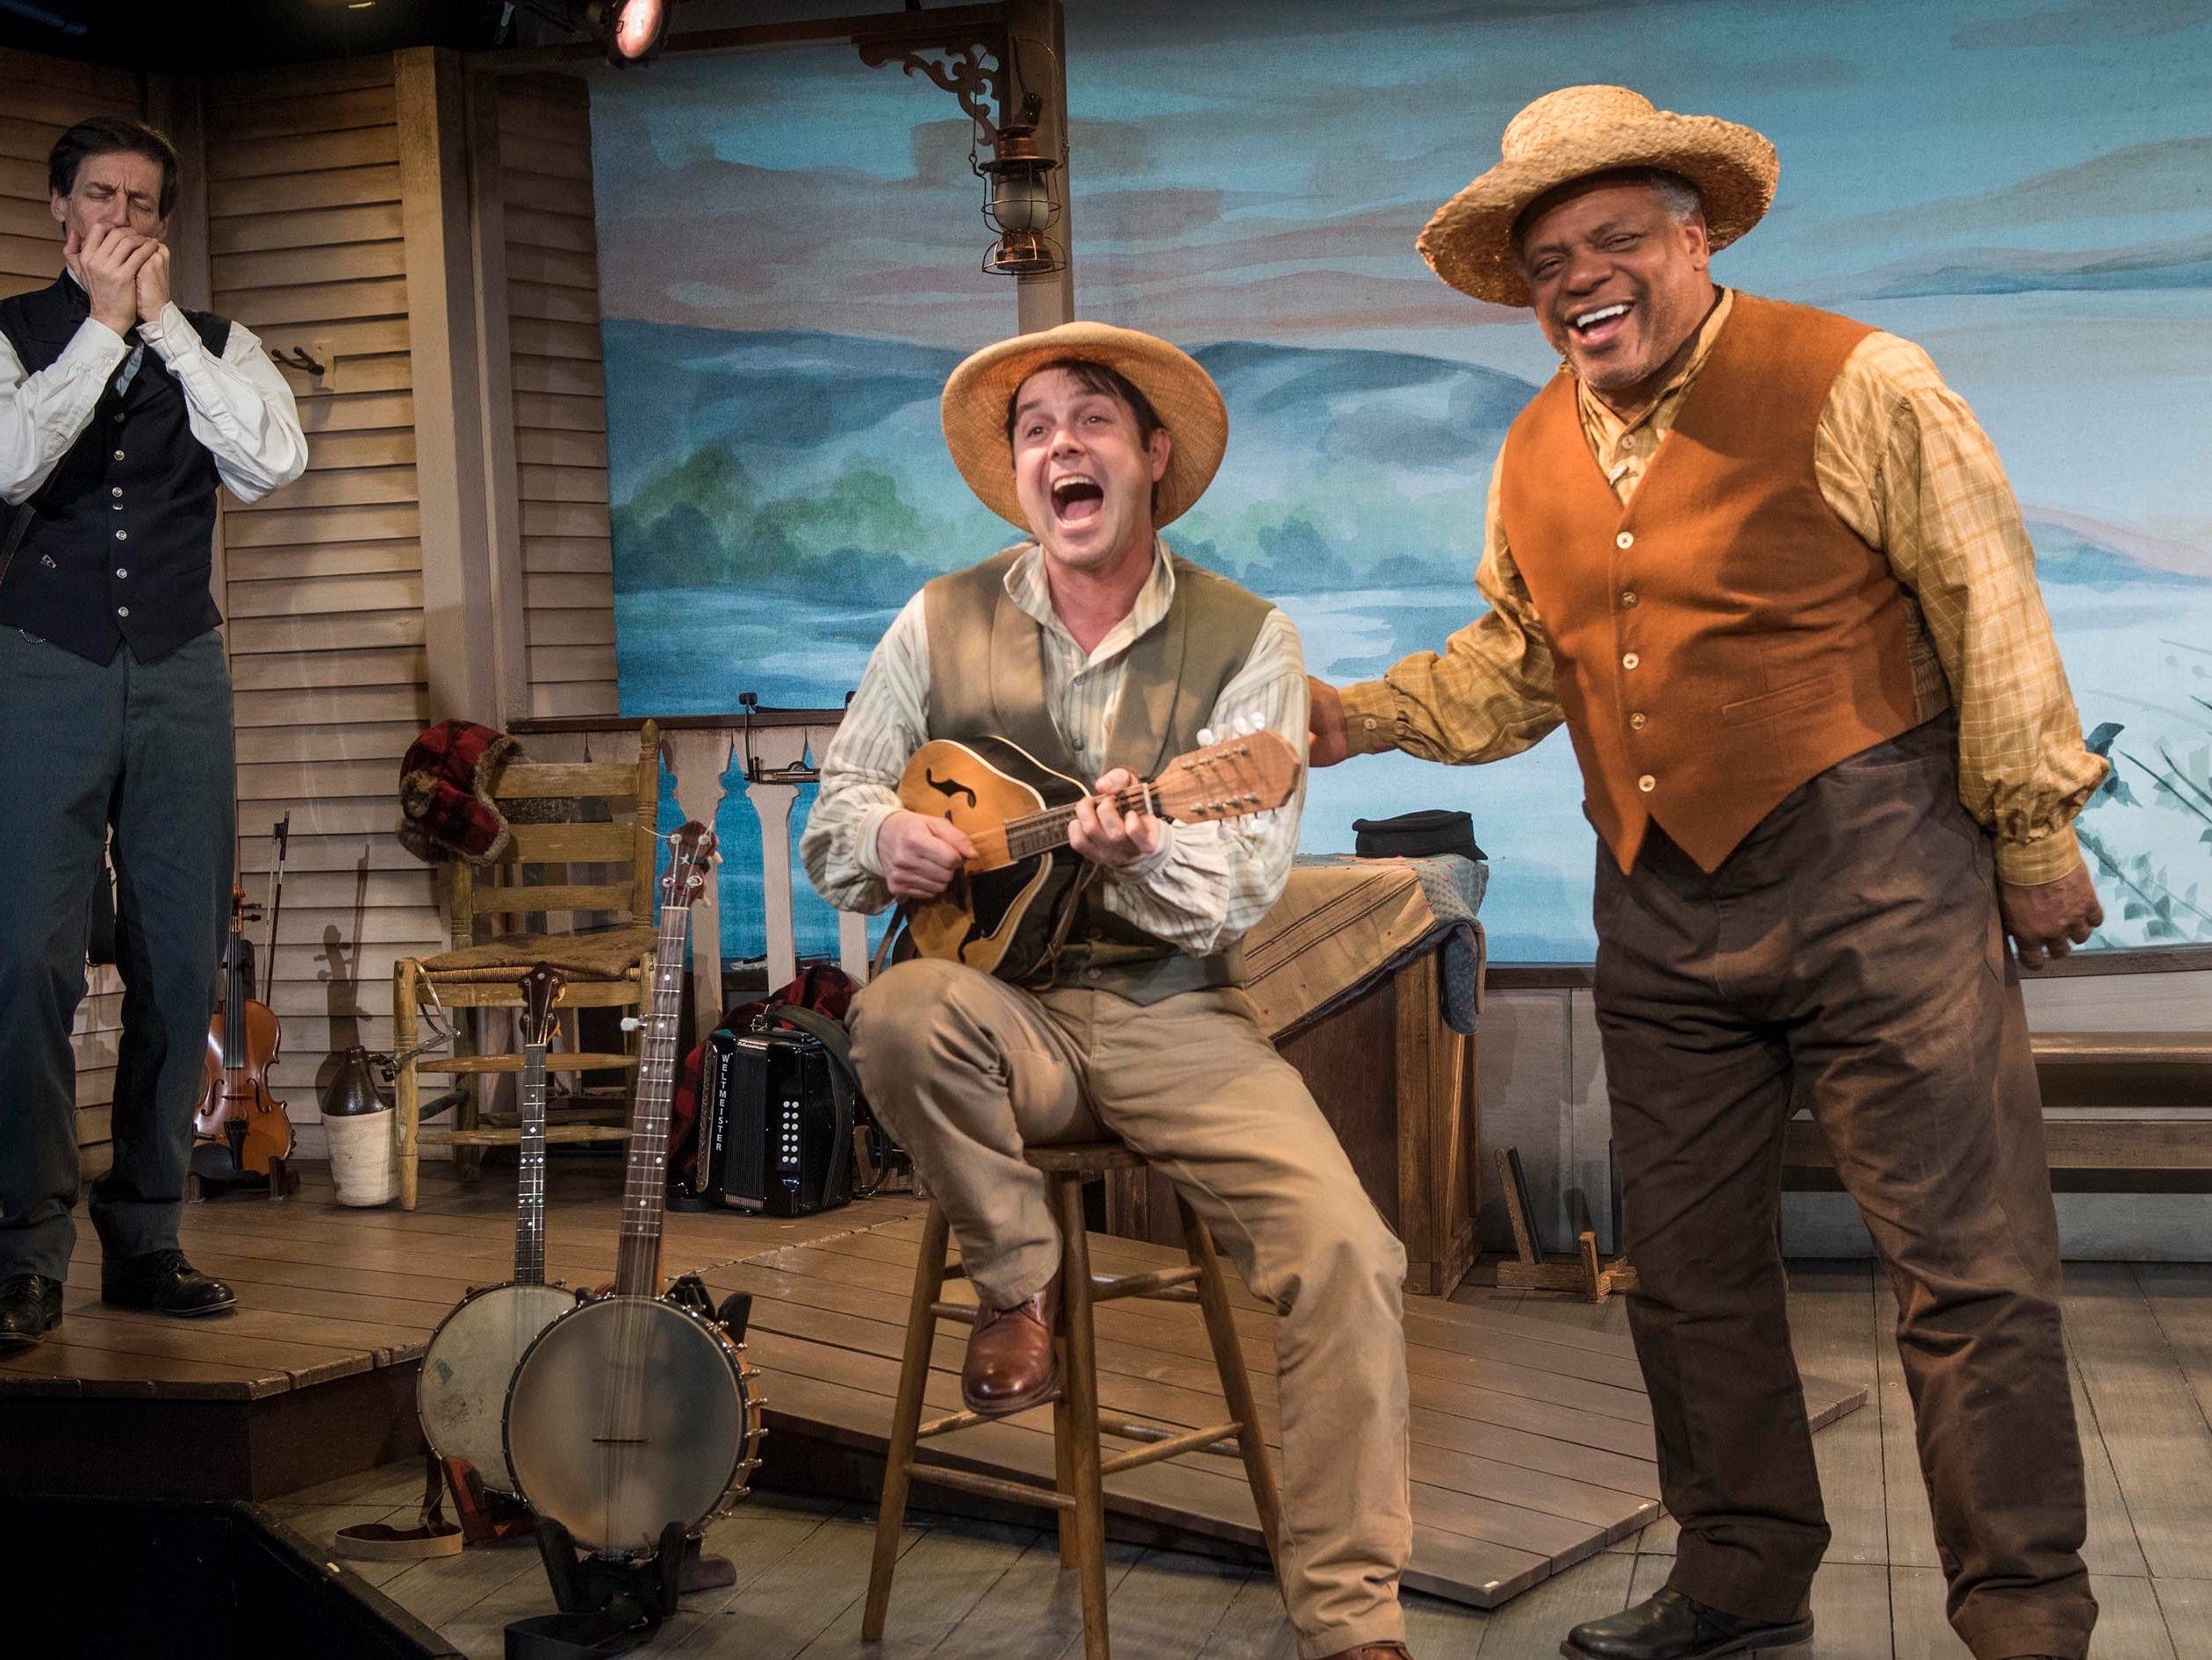 """David Lutken (left) plays harmonica while Spiff Weigand and Harvy Blanks sing in """"Mark Twain's River of Song,"""" staged by Milwaukee Repertory Theater at the Stackner Cabaret."""